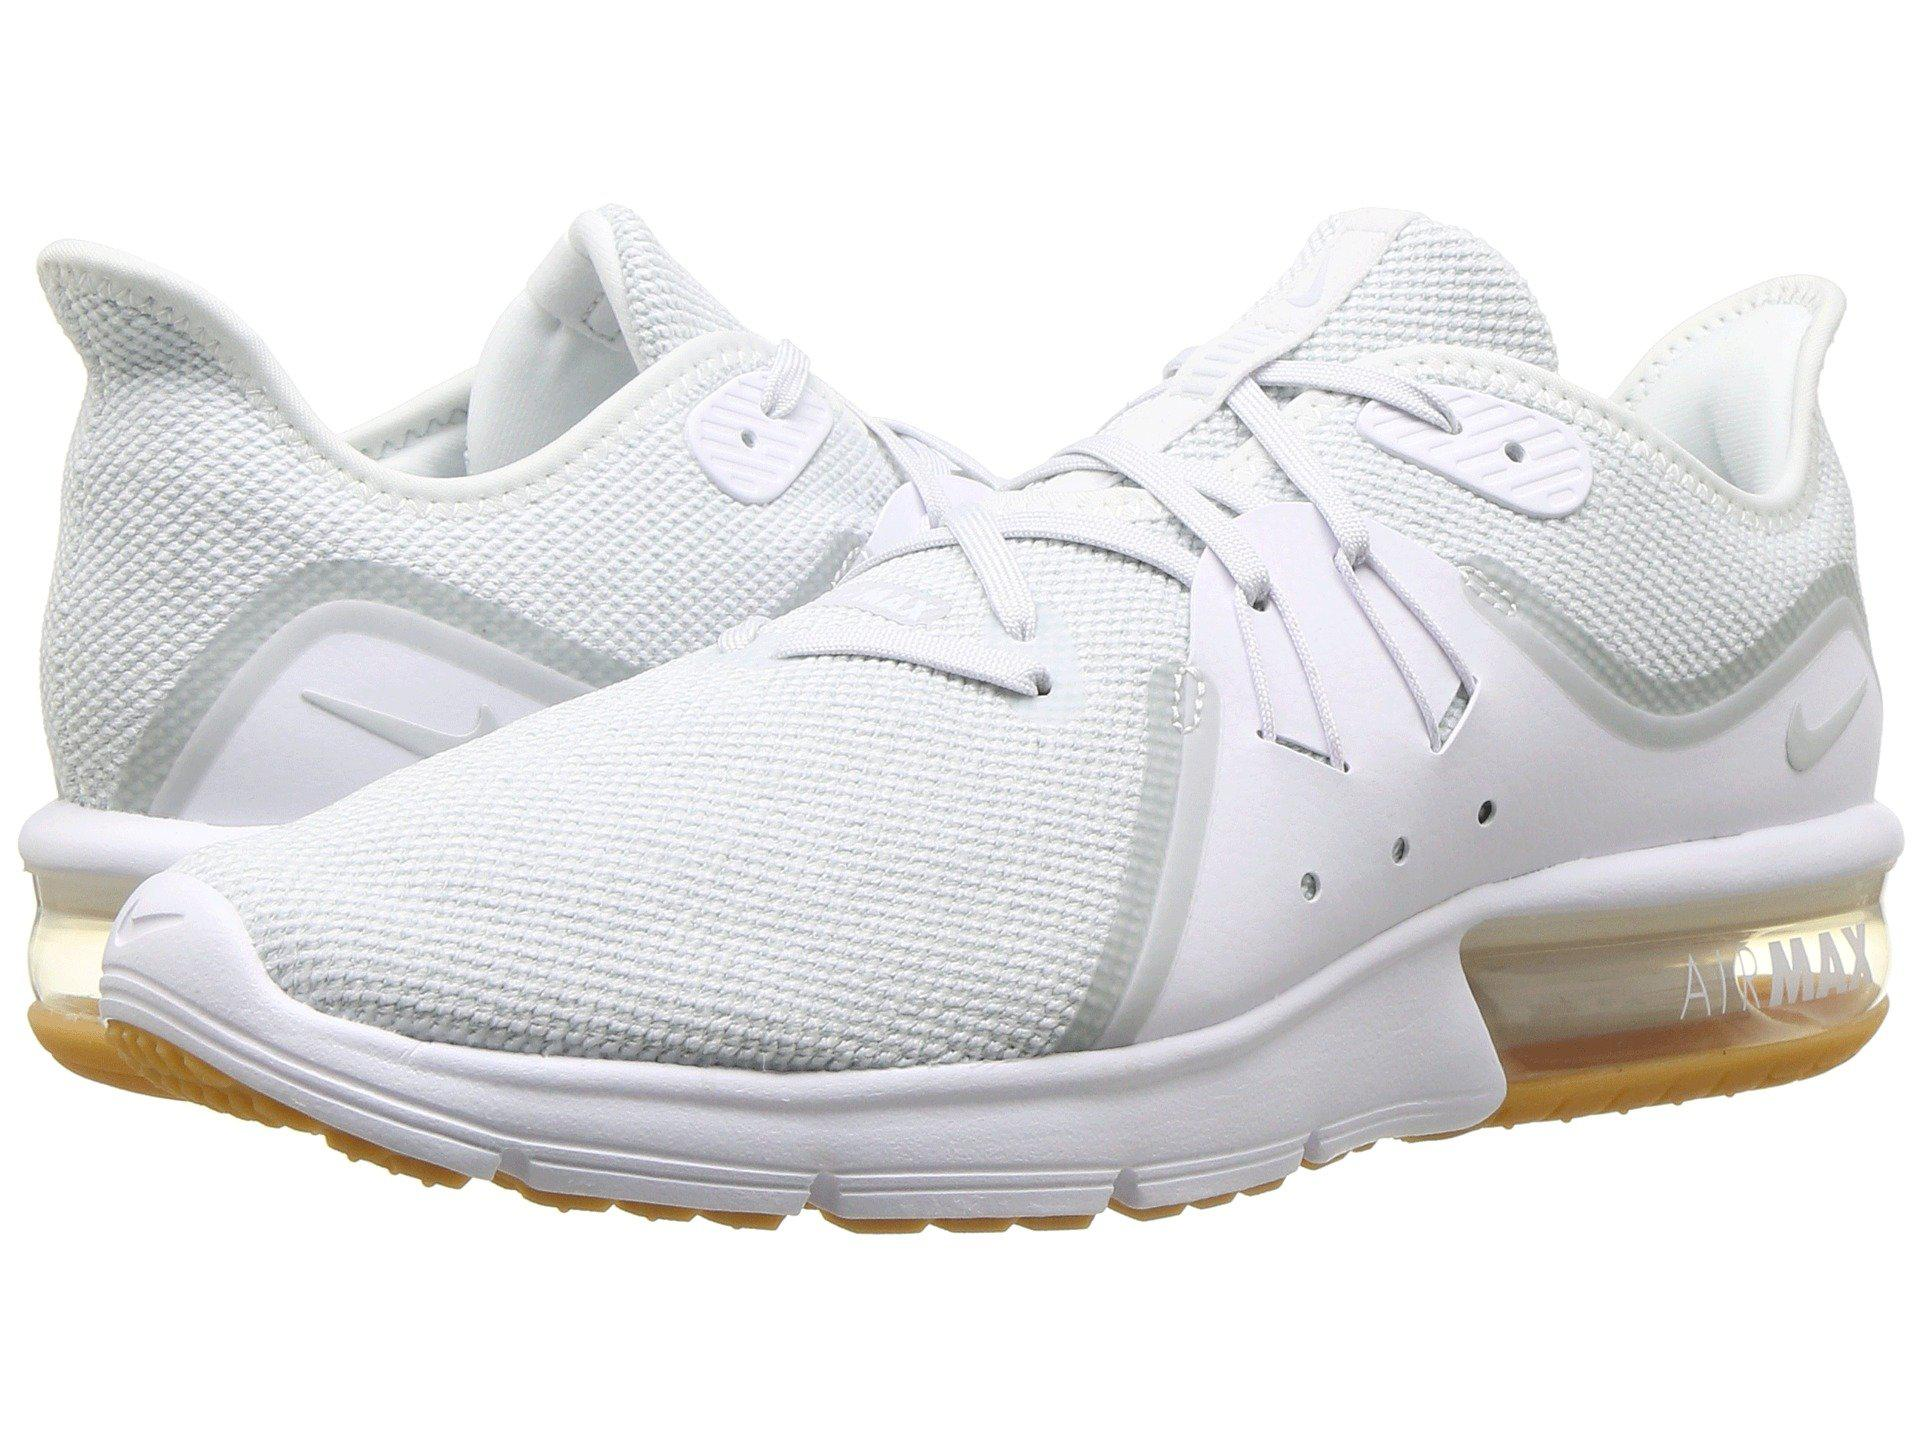 on sale 5c476 70f90 Lyst - Nike Air Max Sequent 3 in White for Men - Save 41%